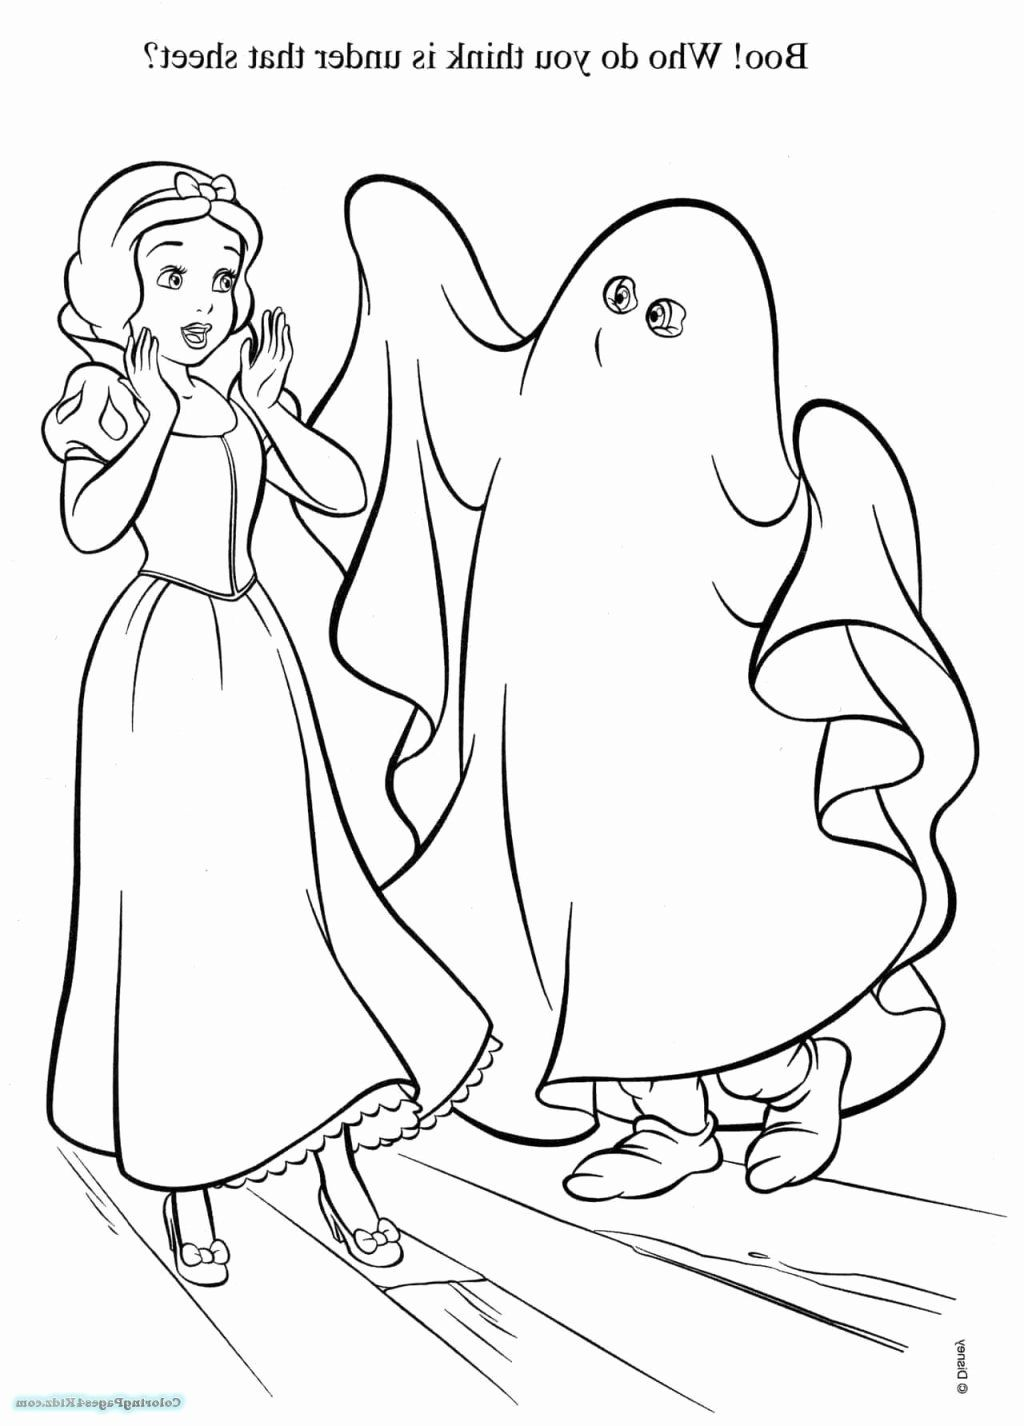 Disney Princess Halloween Coloring Pages Best Of Disney Princess Halloween Coloring Pages Halloween Coloring Halloween Coloring Pages Disney Princess Halloween